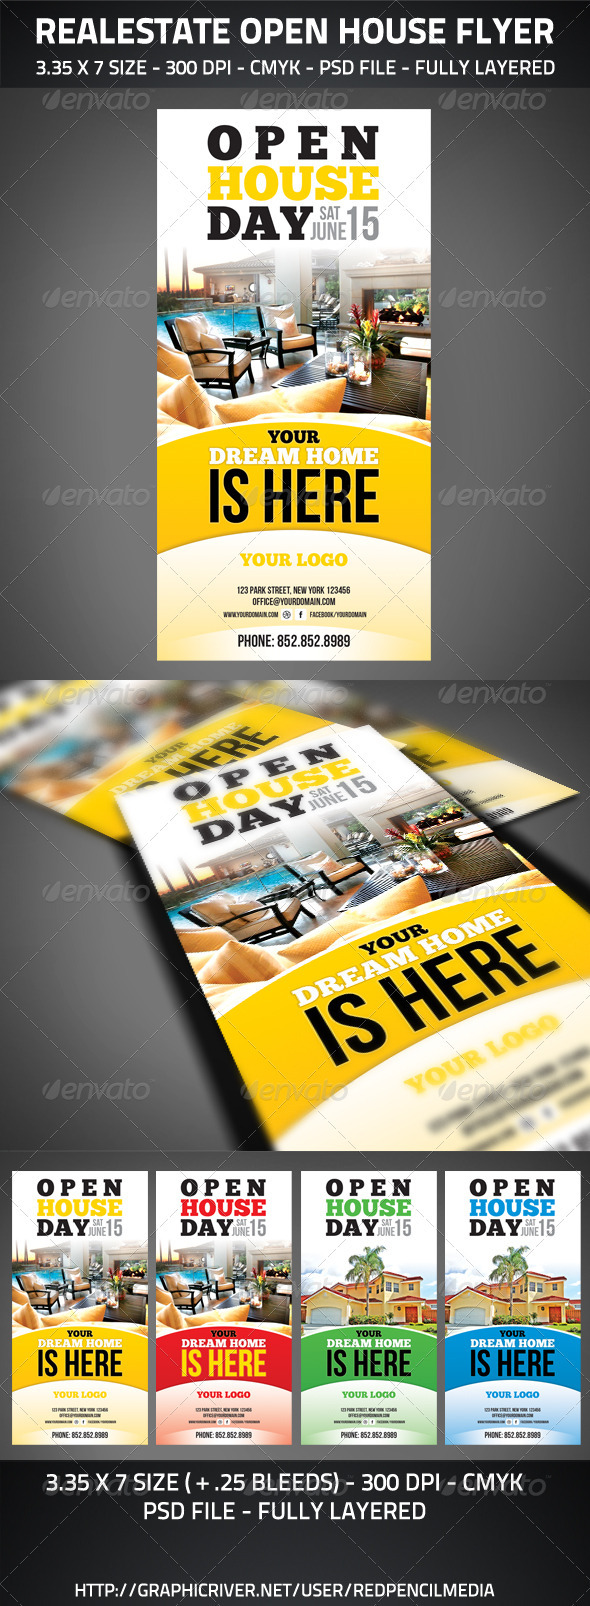 Realestate Open House Flyer - Commerce Flyers